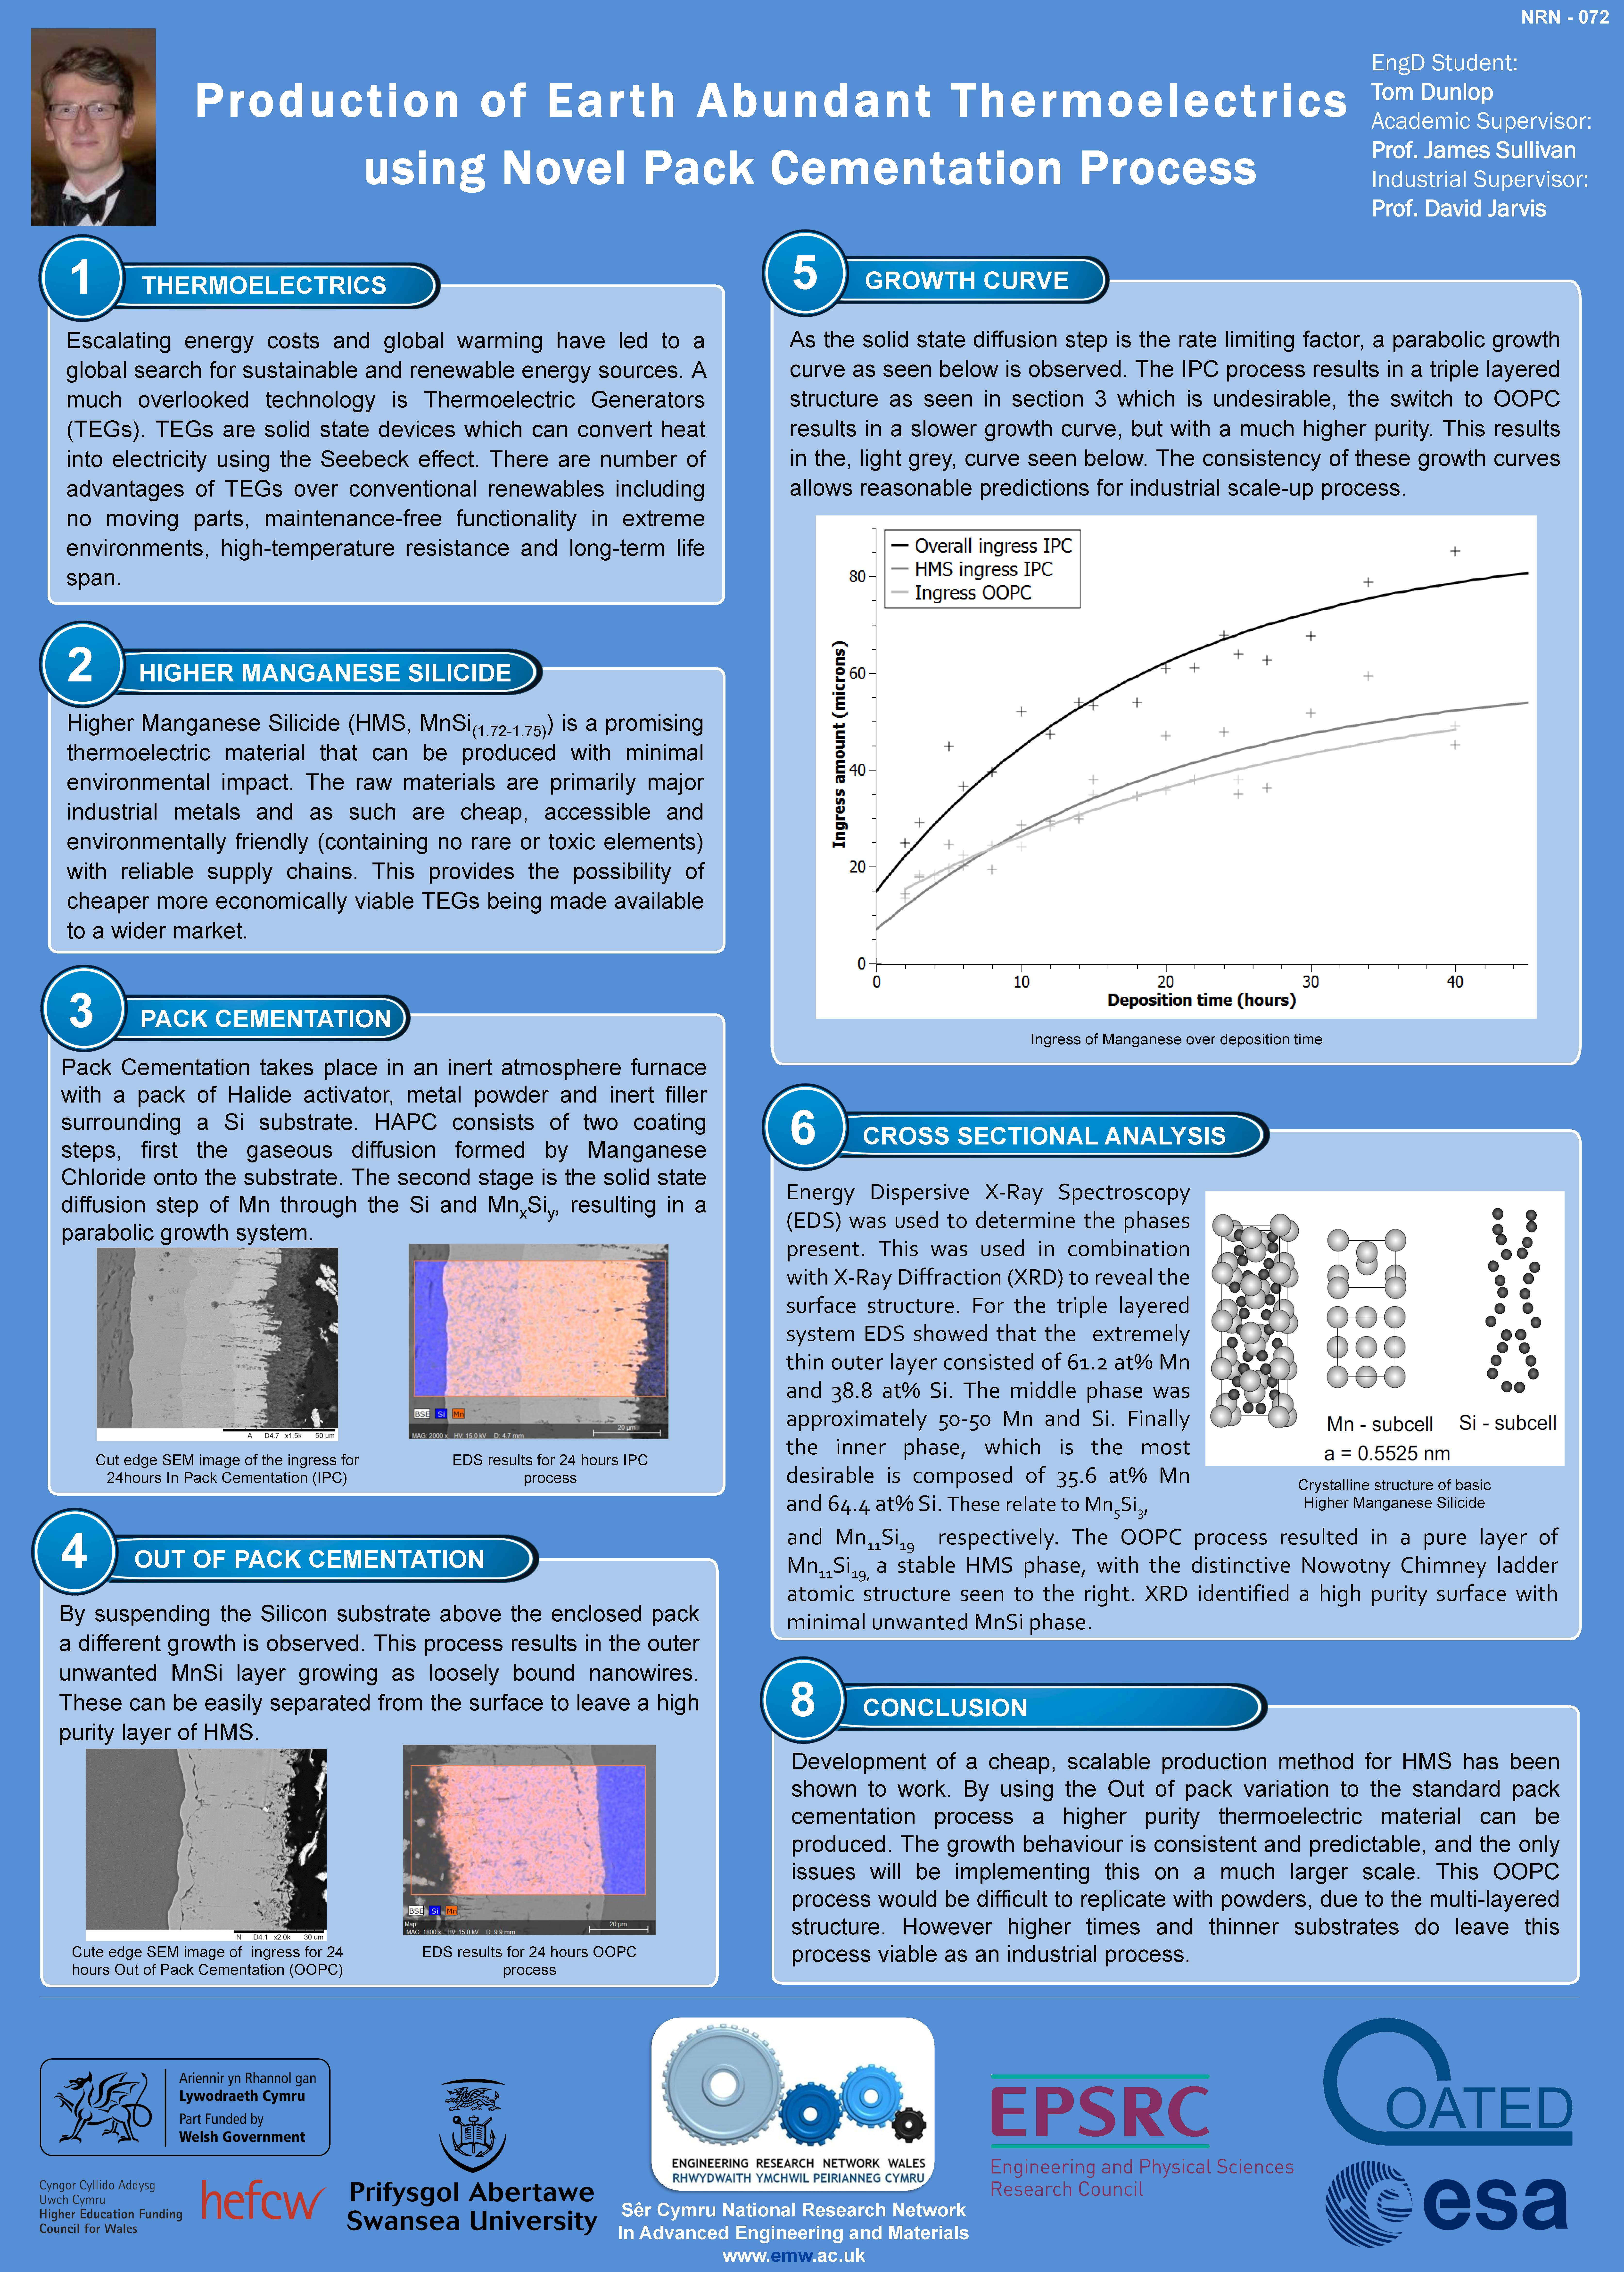 Production of Earth Abundant Thermoelectrics using Novel Pack Cementation Process